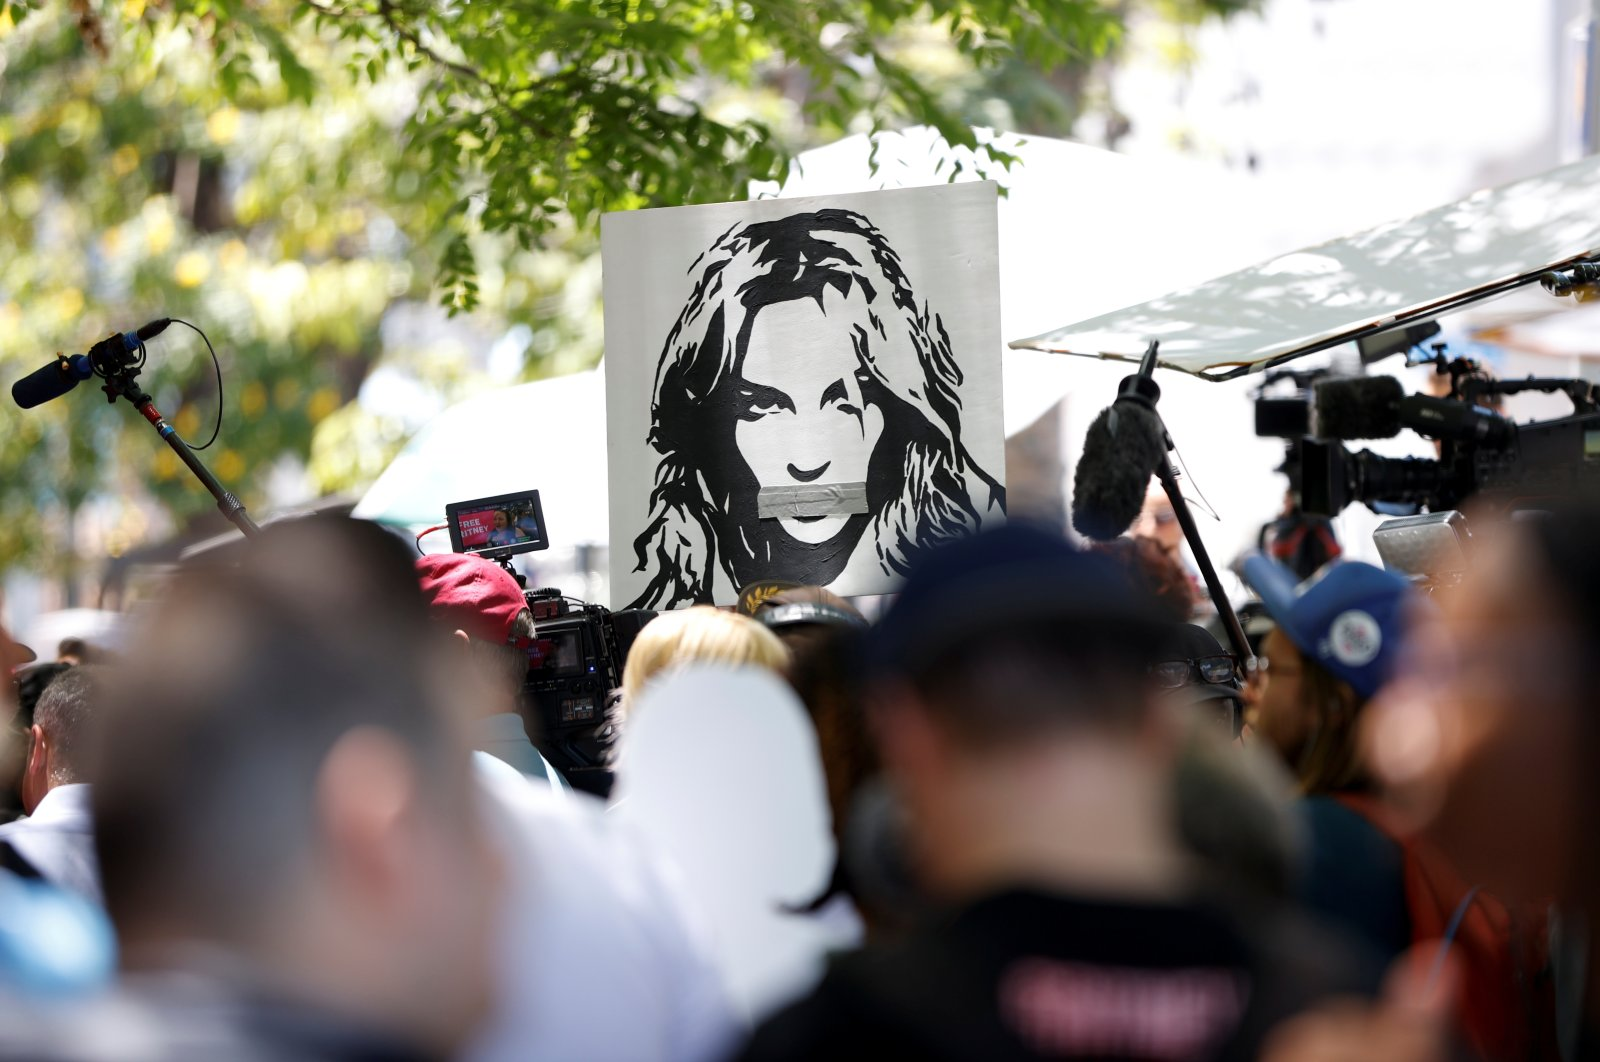 People protest in support of pop star Britney Spears on the day of her conservatorship case hearing at Stanley Mosk Courthouse in Los Angeles, California, U.S., June 23, 2021. (Reuters Photo)